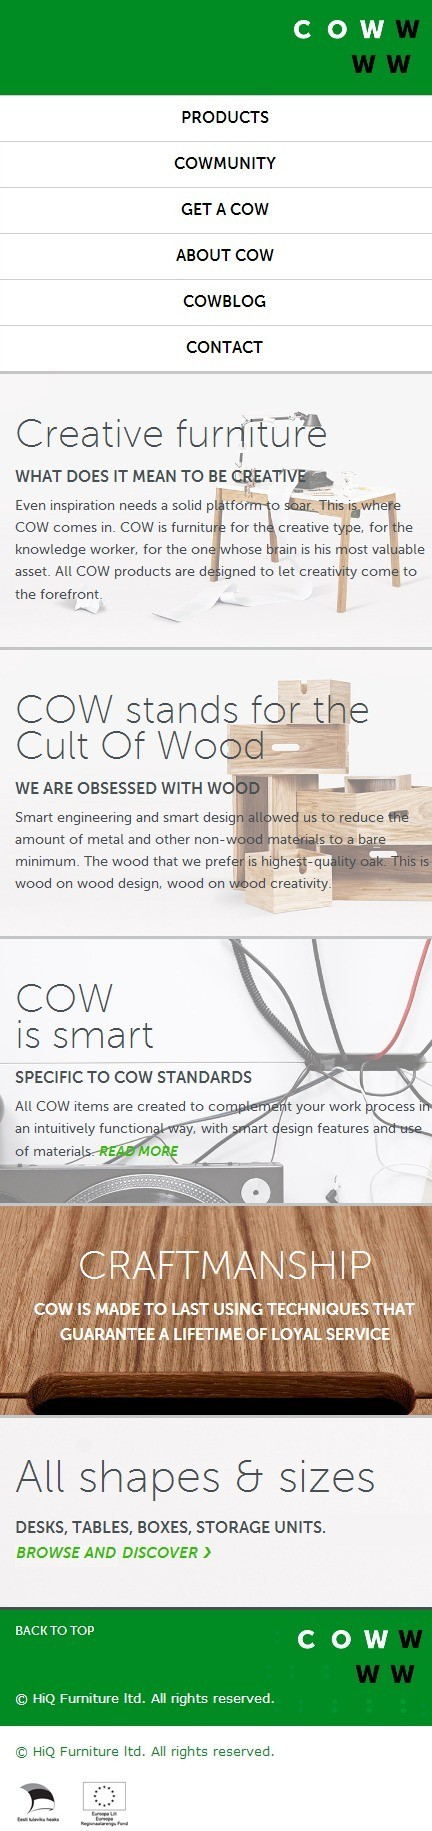 COW_4-_Creative_Furniture___Cult_Of_Wood-mob.png